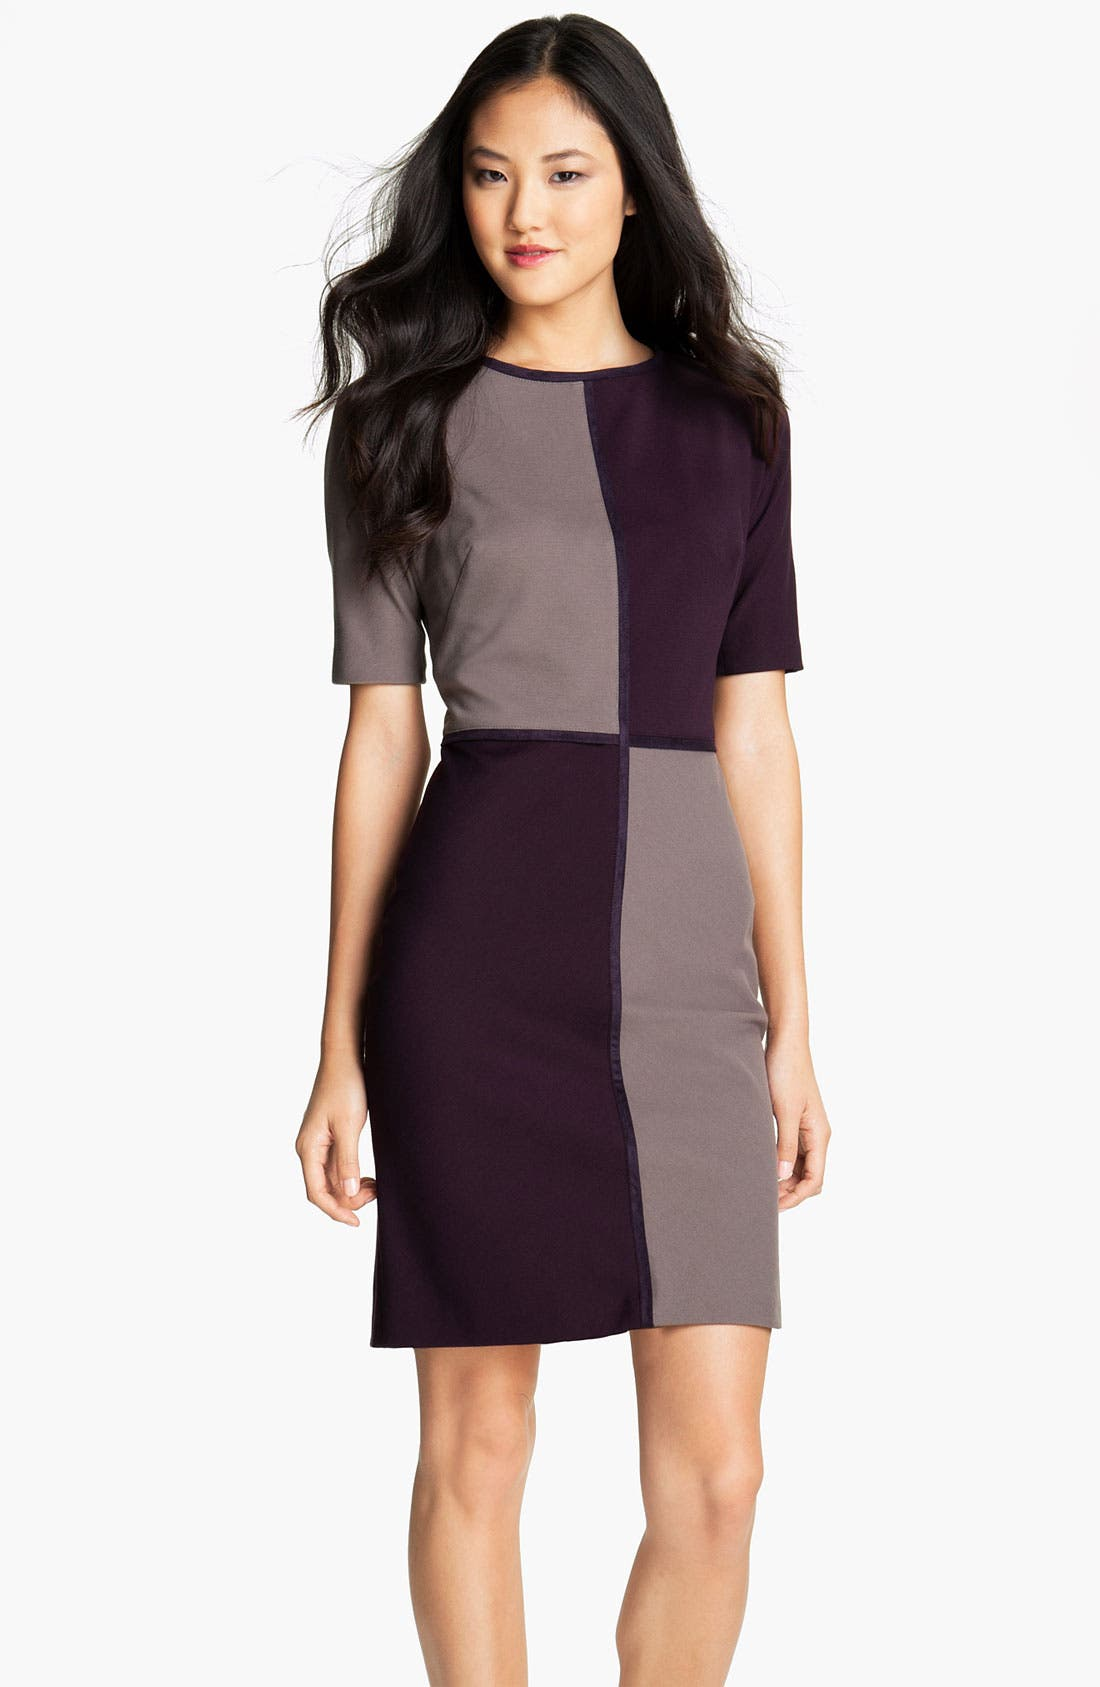 Main Image - Suzi Chin for Maggy Boutique Colorblock Sheath Dress (Petite)